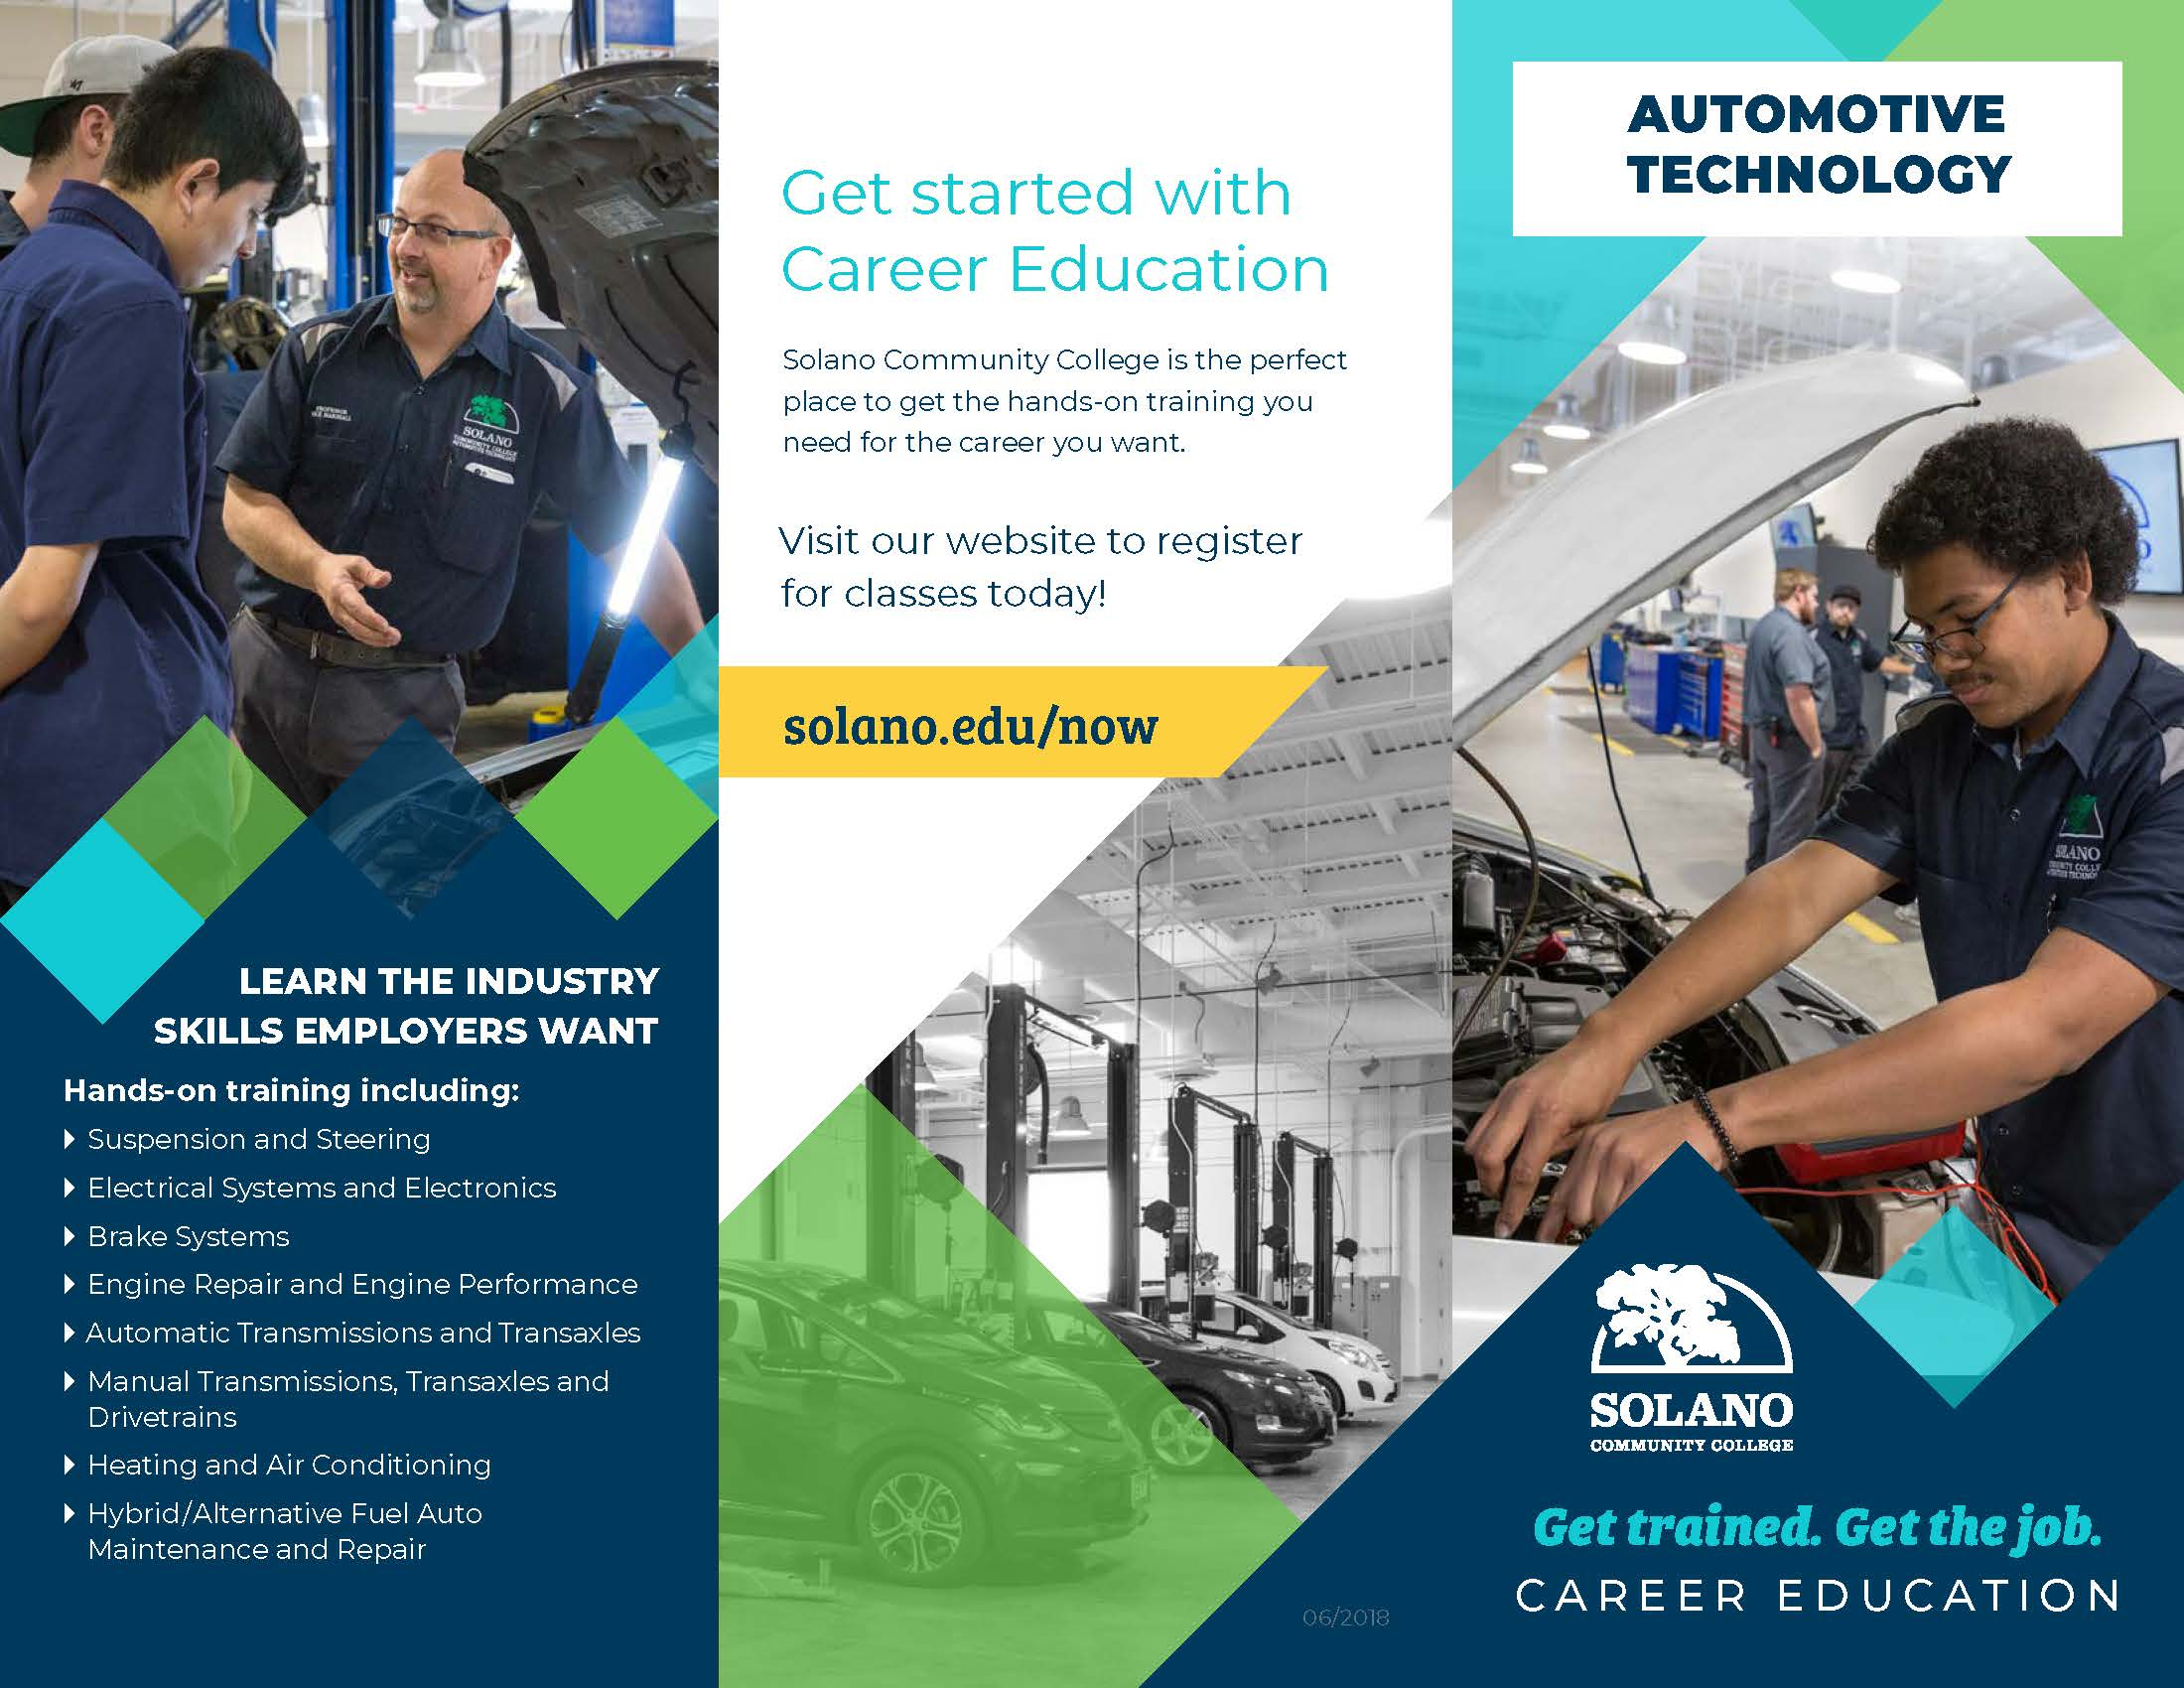 Brochure contents available in Automotive Technician Brochure link